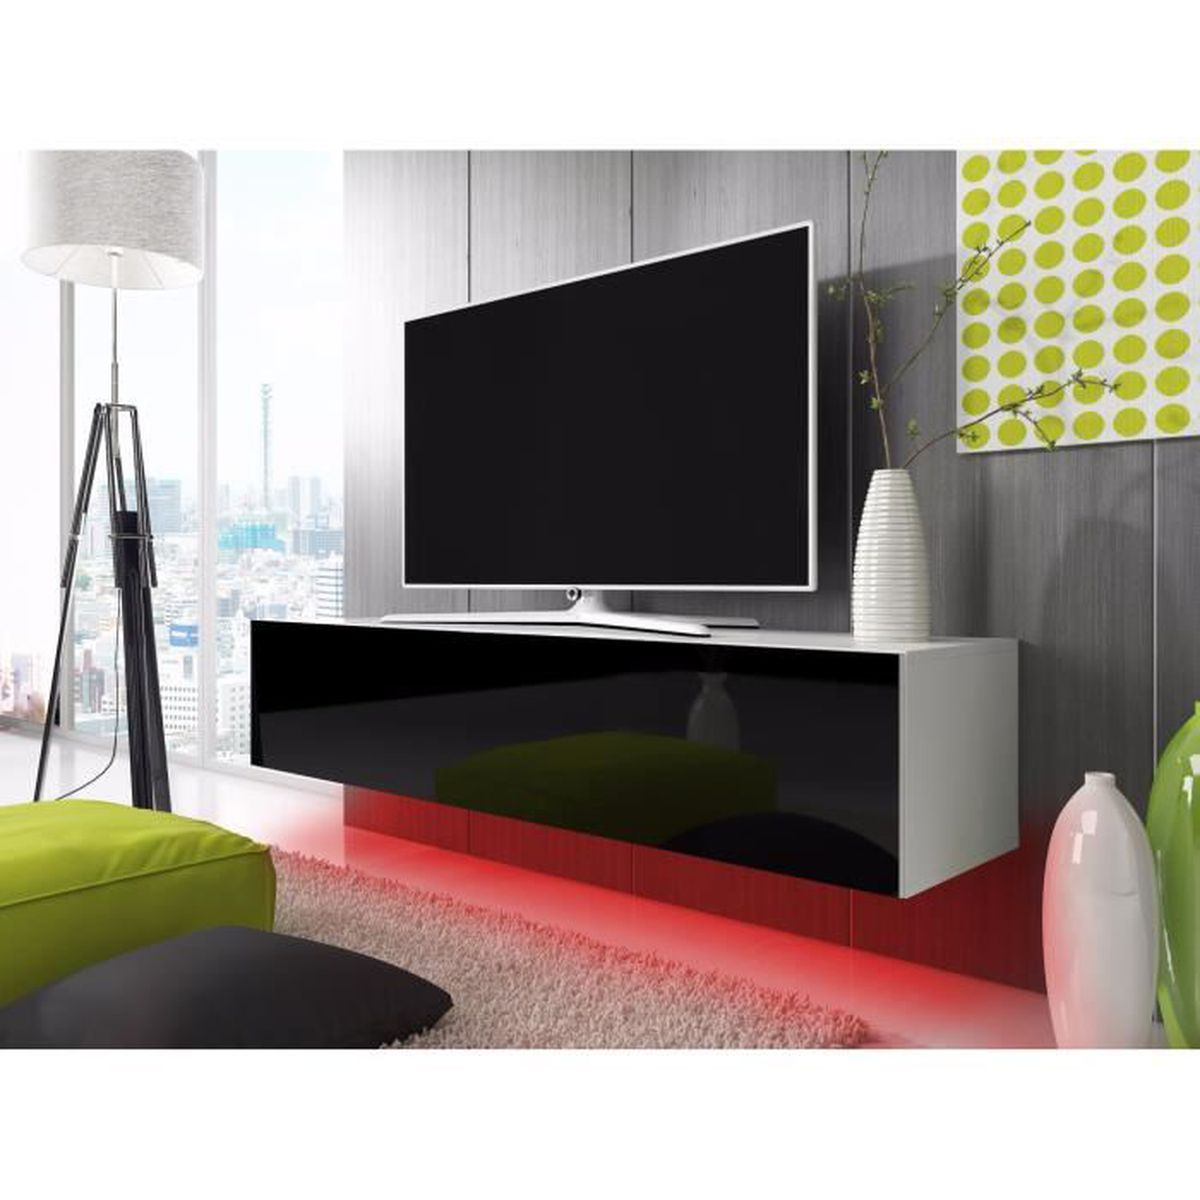 meuble tv lana avec led rouge blanc mat noir brillant 160cm achat vente meuble tv meuble. Black Bedroom Furniture Sets. Home Design Ideas